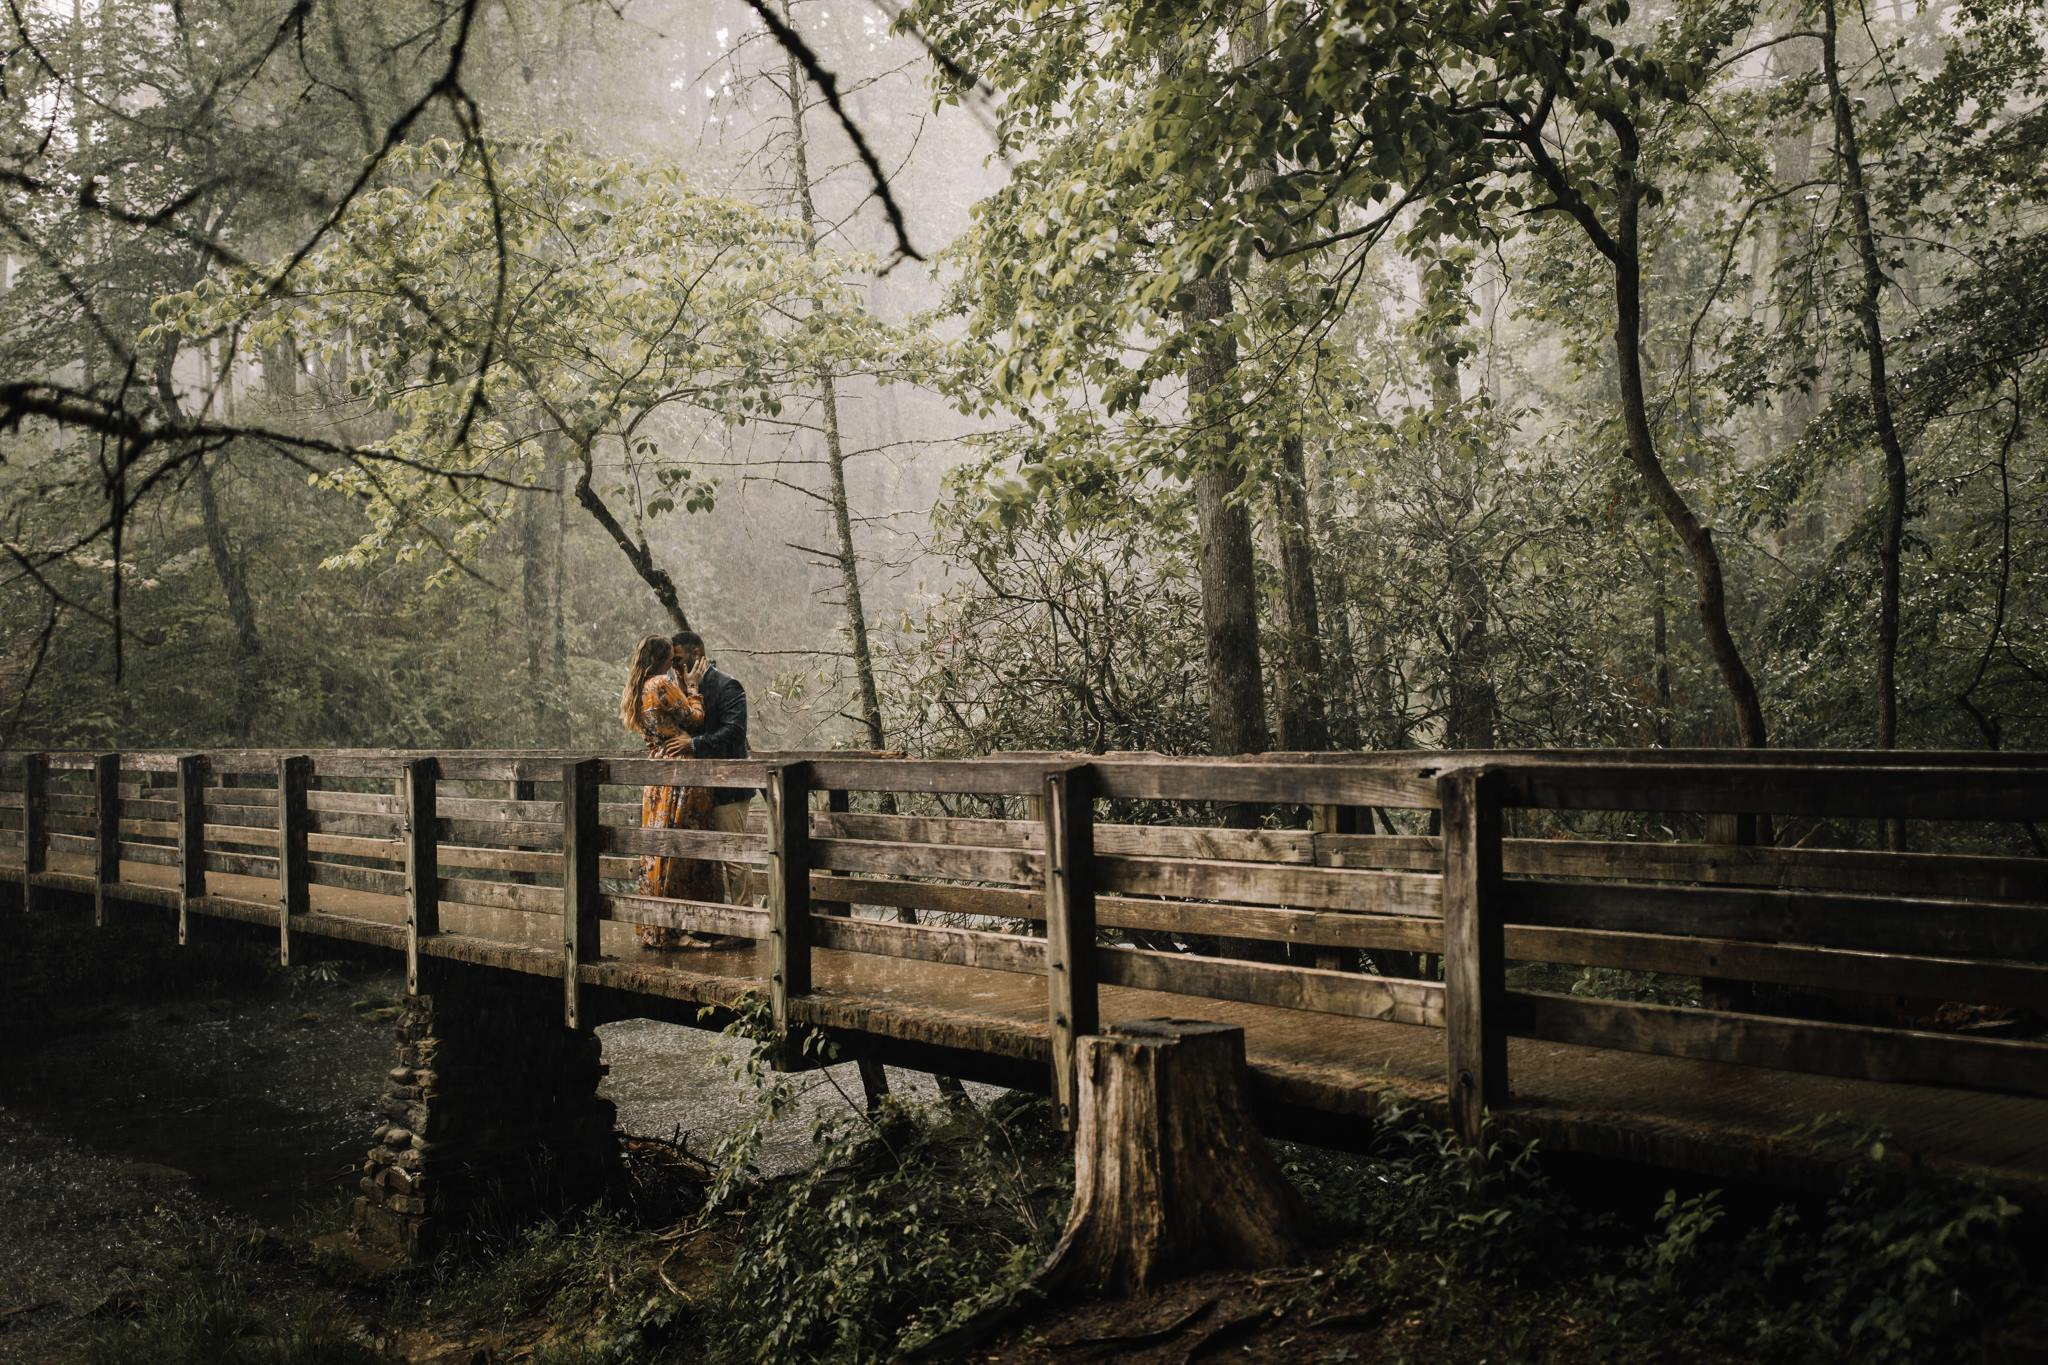 billie-shaye style photography - www.billieshayestyle.com - smokey mountain cades cove summer rain engagement session - gatlinburg tennessee-18.jpg